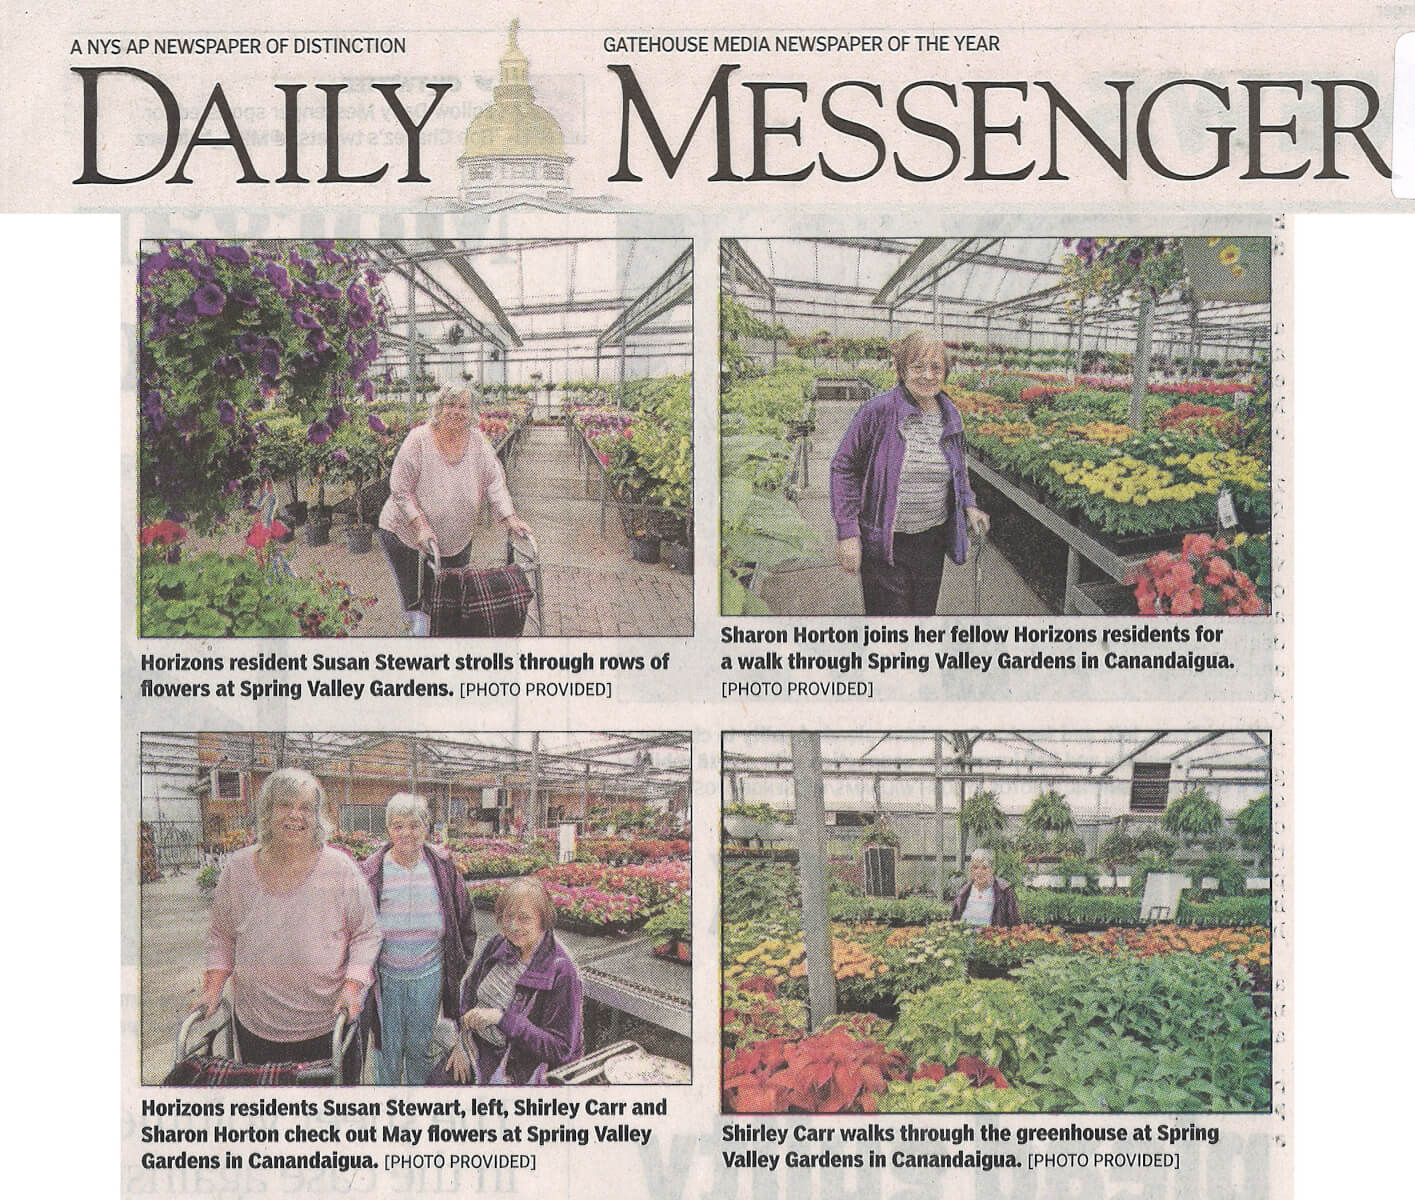 Horizons May Flowers, 5.30.19 Daily Messenger